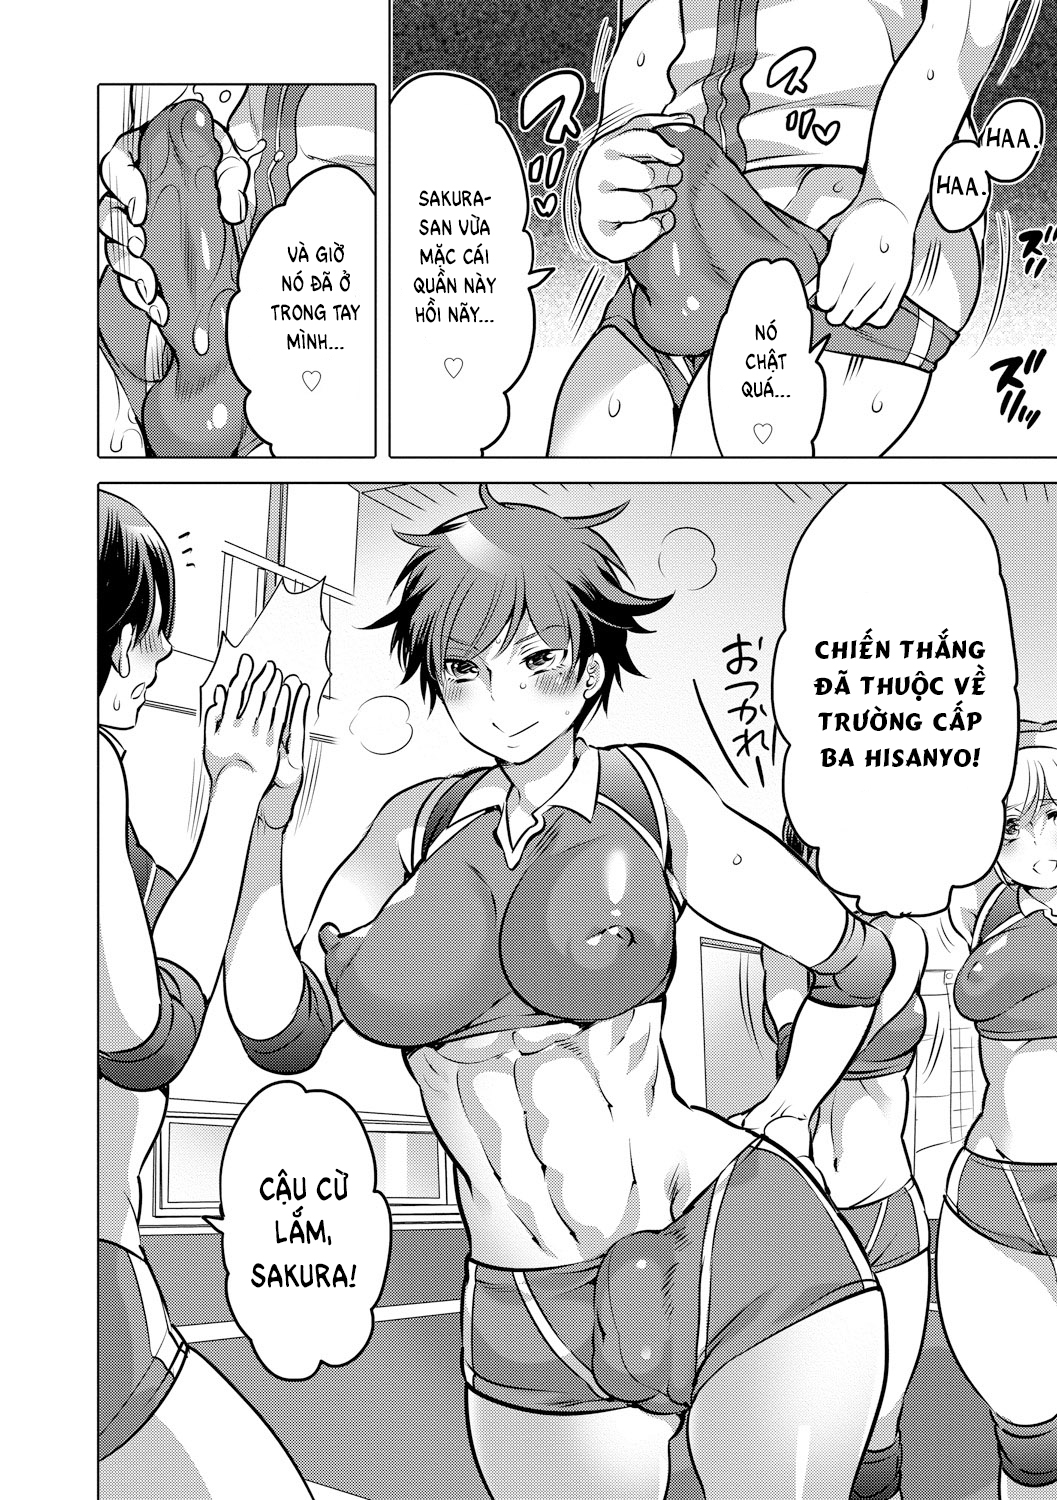 HentaiVN.net - Ảnh 5 - Futanari Volley - Oneshot